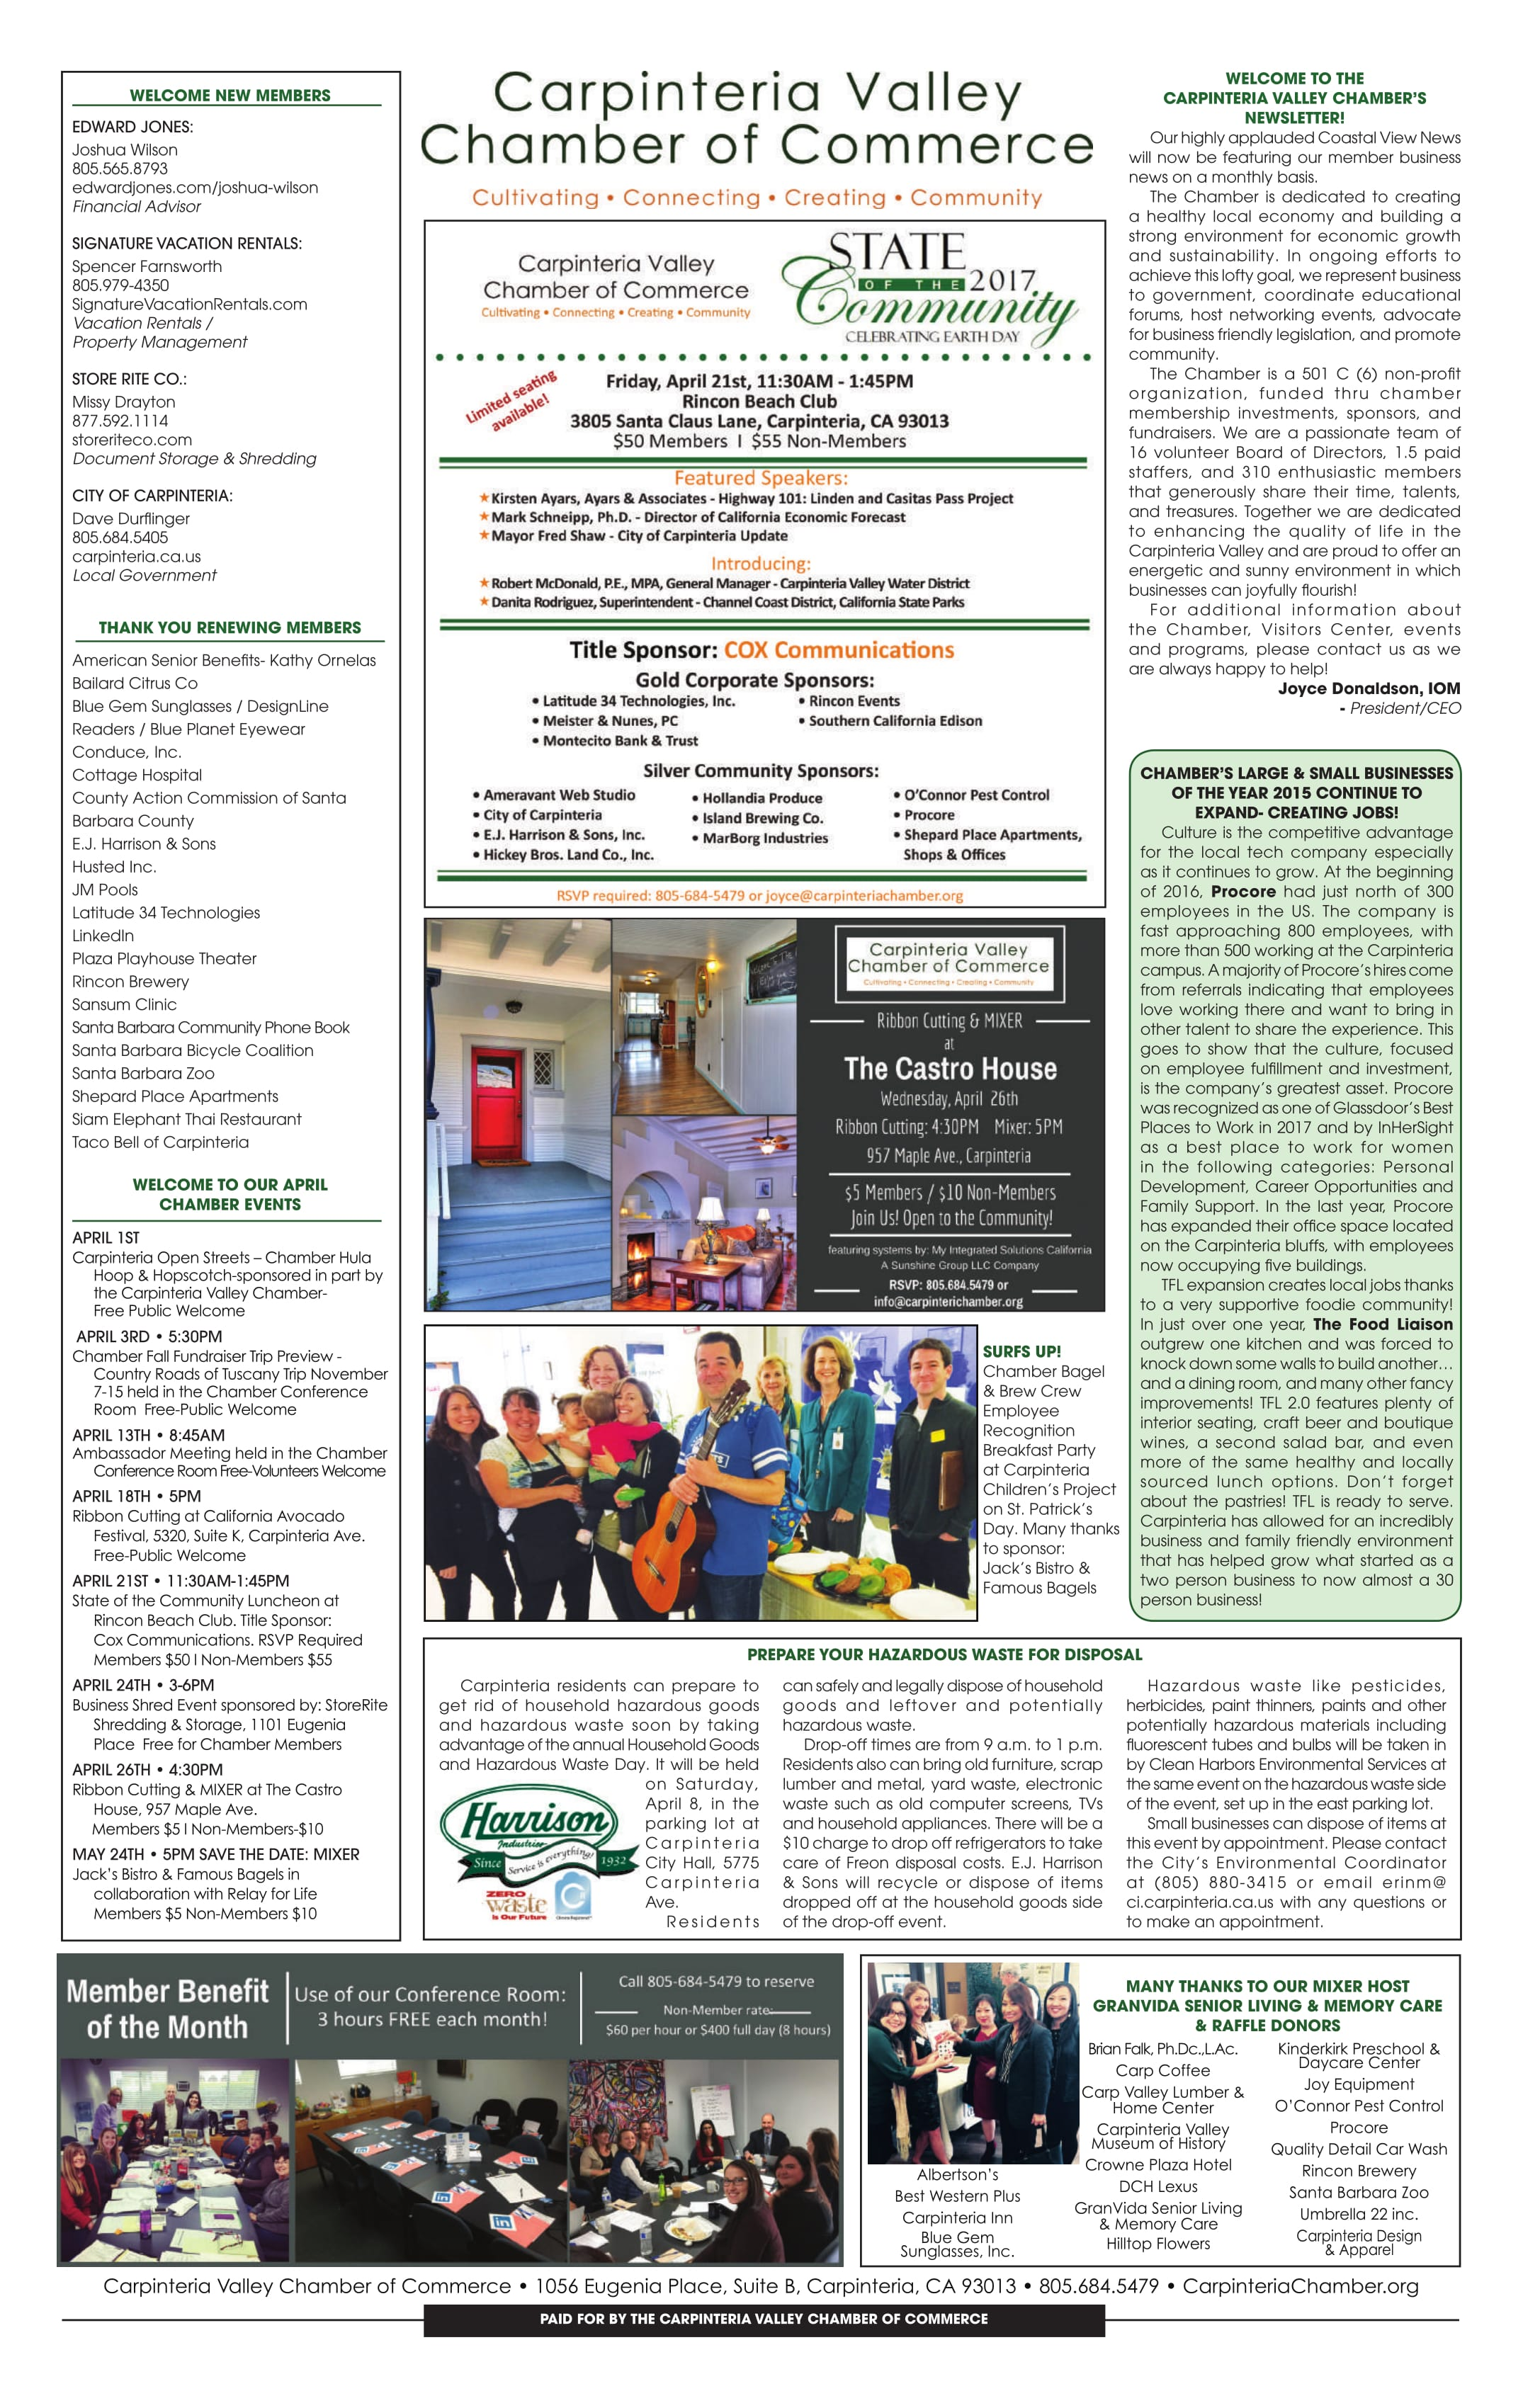 Coastal View News Chamber Newsletter - March 27, 2017